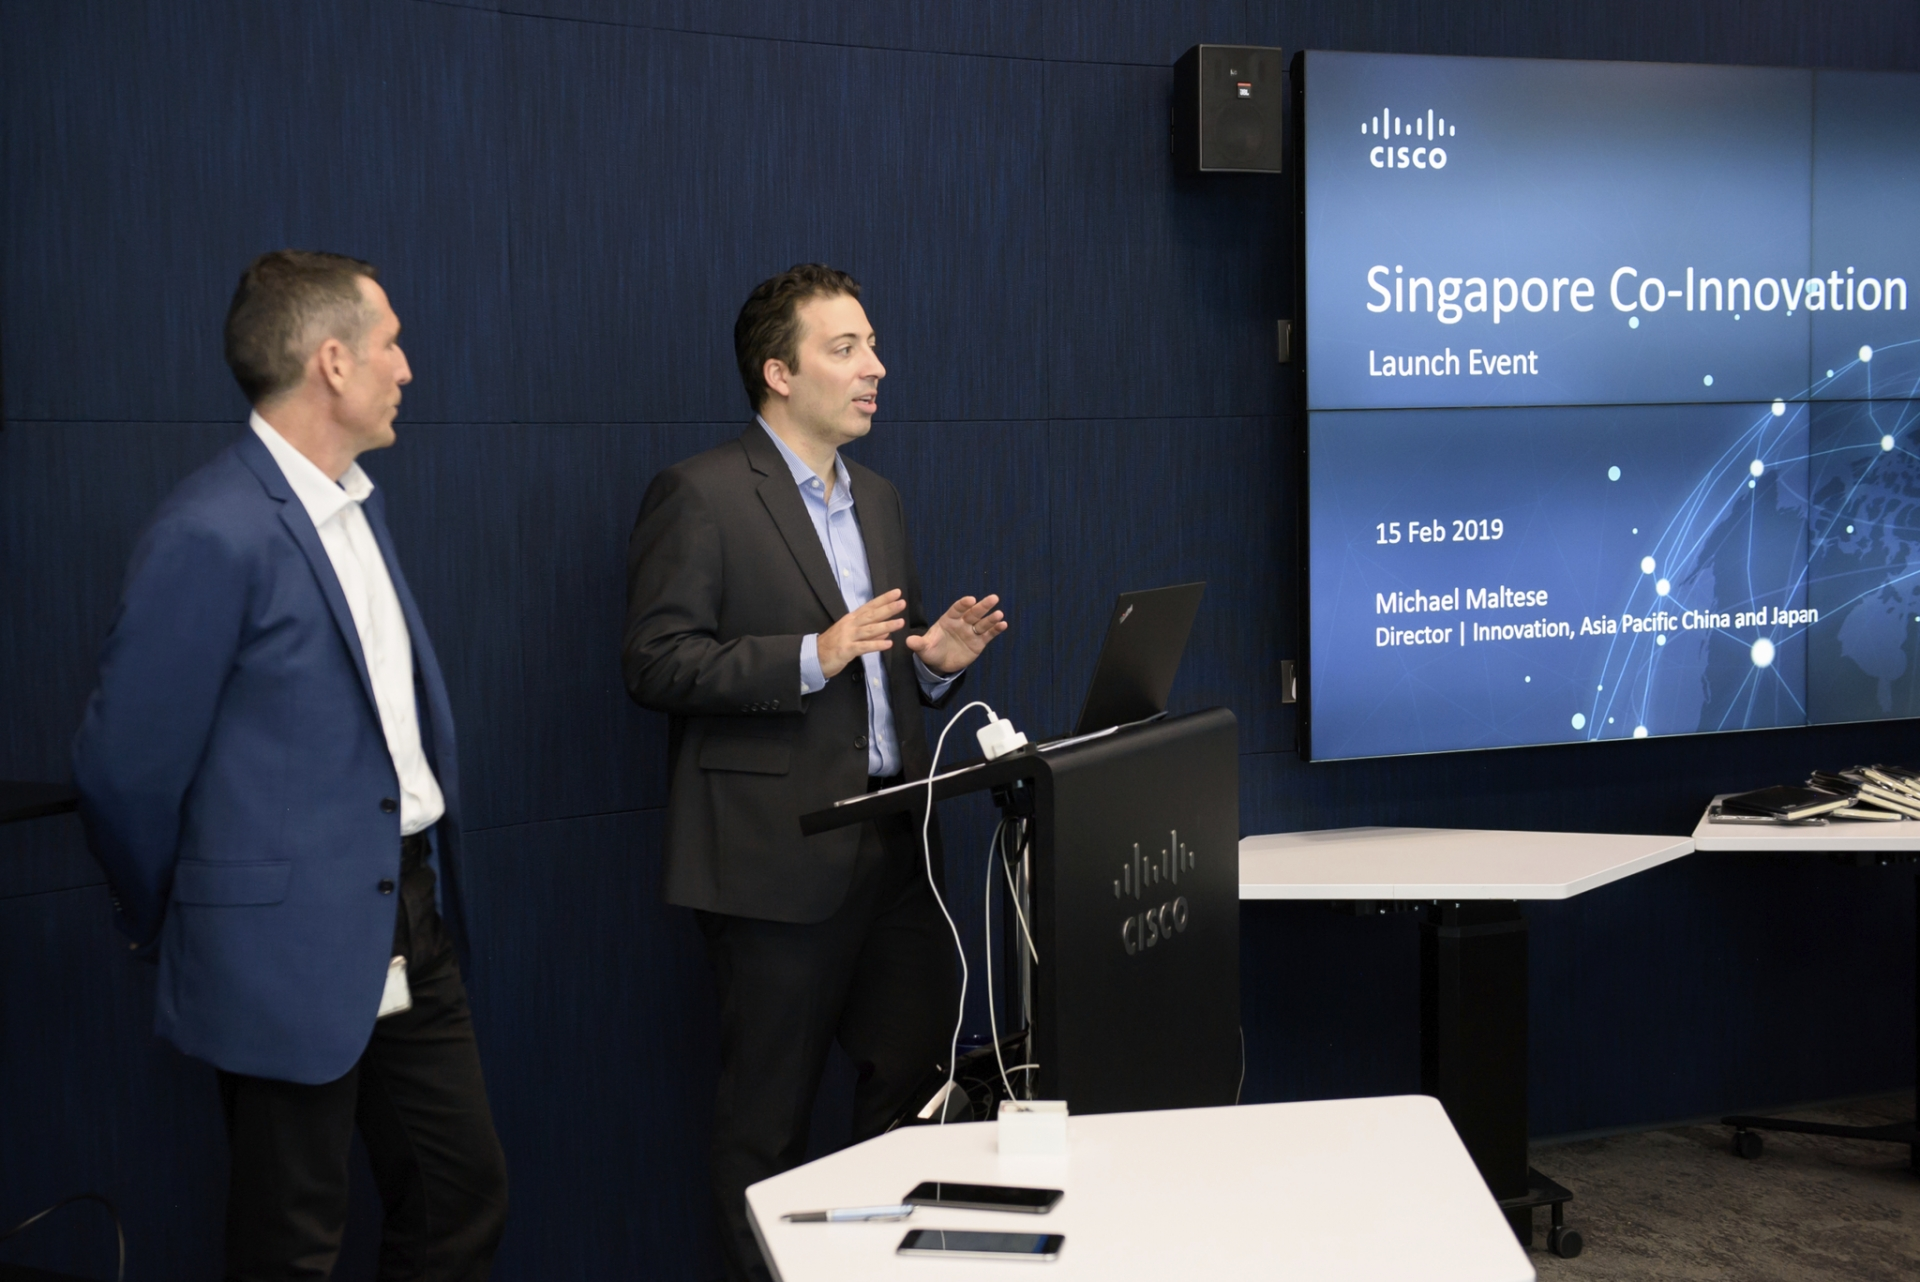 Cisco Co-Innovation Centers accelerate opportunities